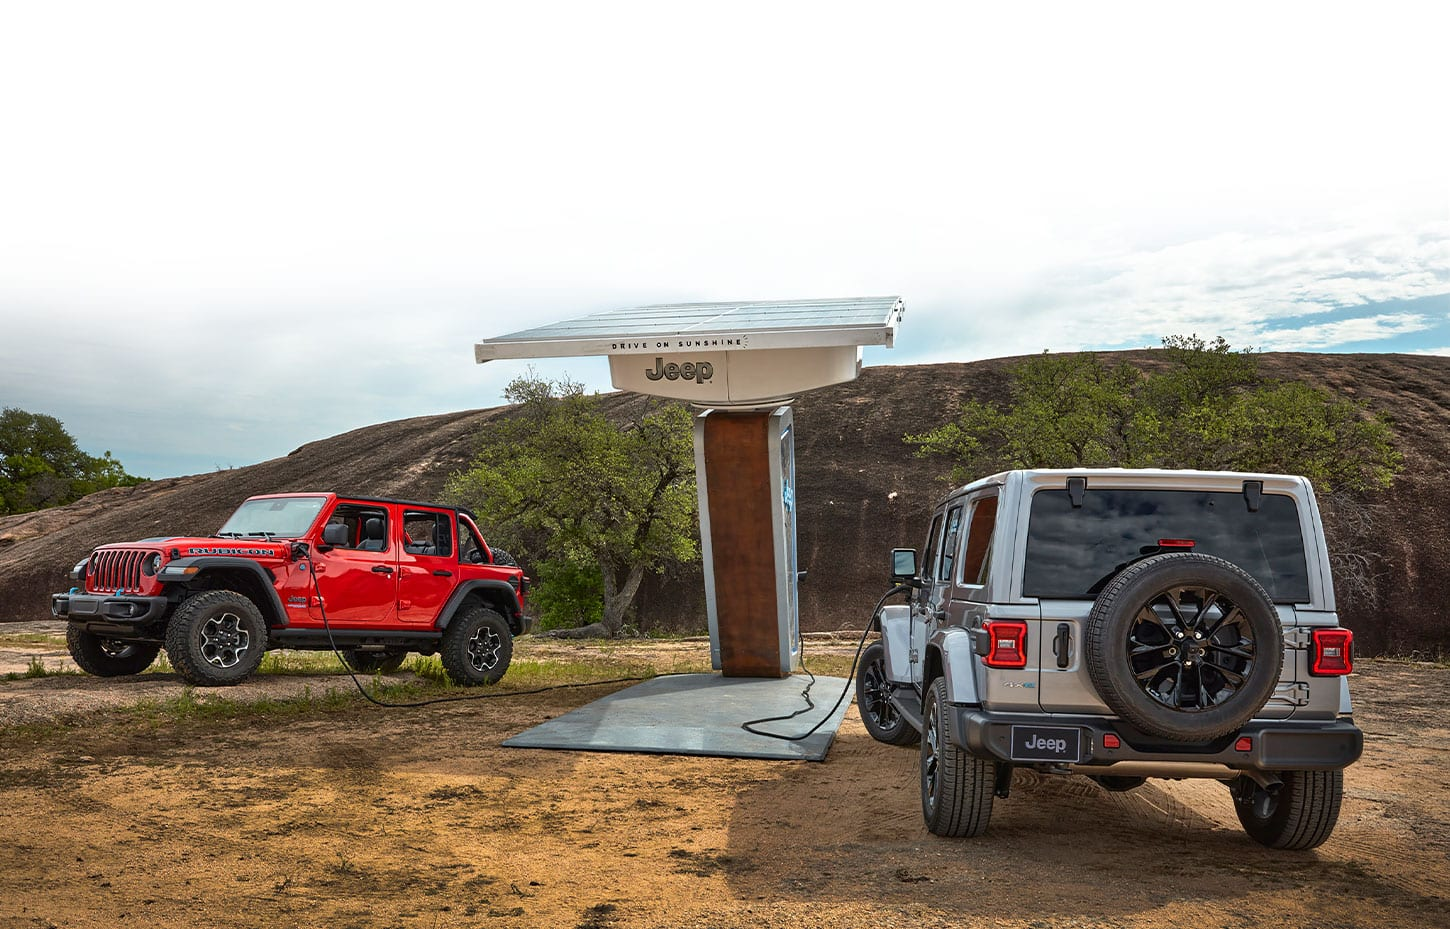 A solar-powered Jeep-branded charging station in the desert, bearing the slogan